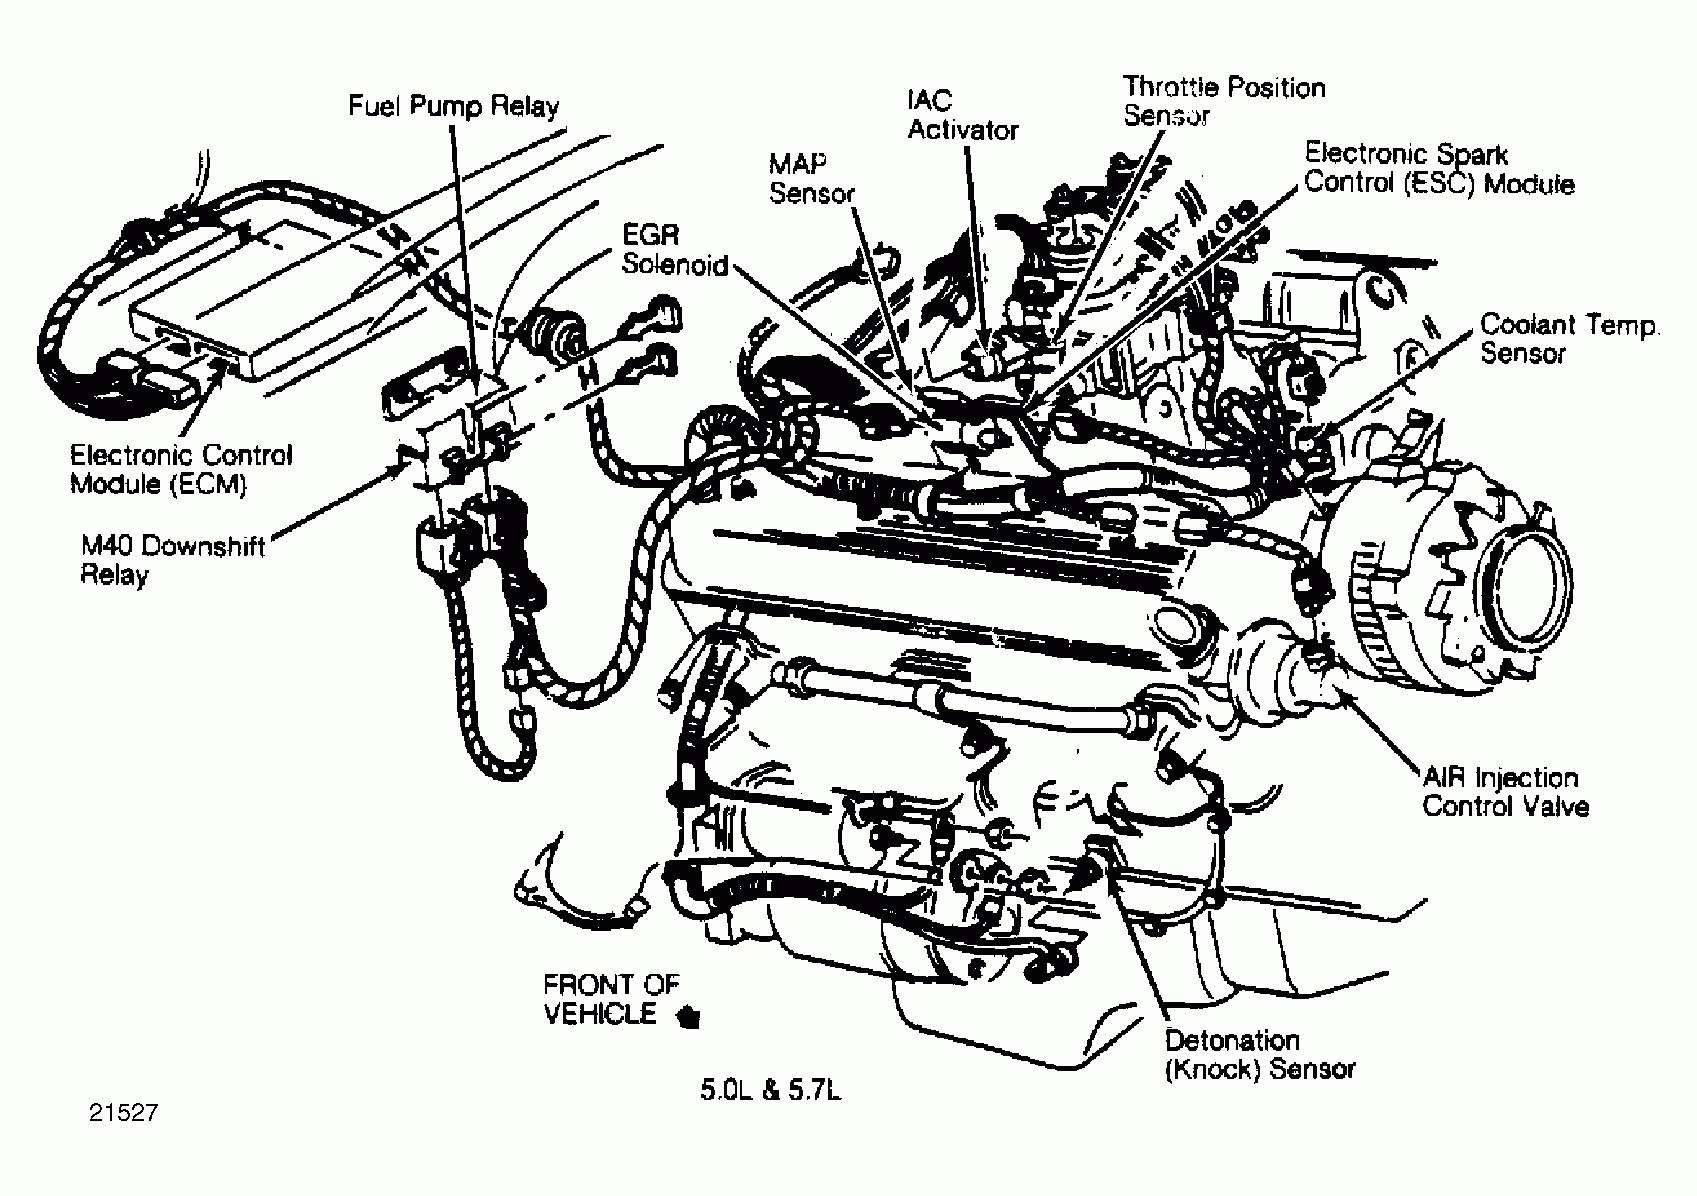 4 3 Liter V6 Vortec Engine Diagram 1994 Chevy Camaro Engine Diagram Chevrolet S10 V6 Engine Diagram Of 4 3 Liter V6 Vortec Engine Diagram